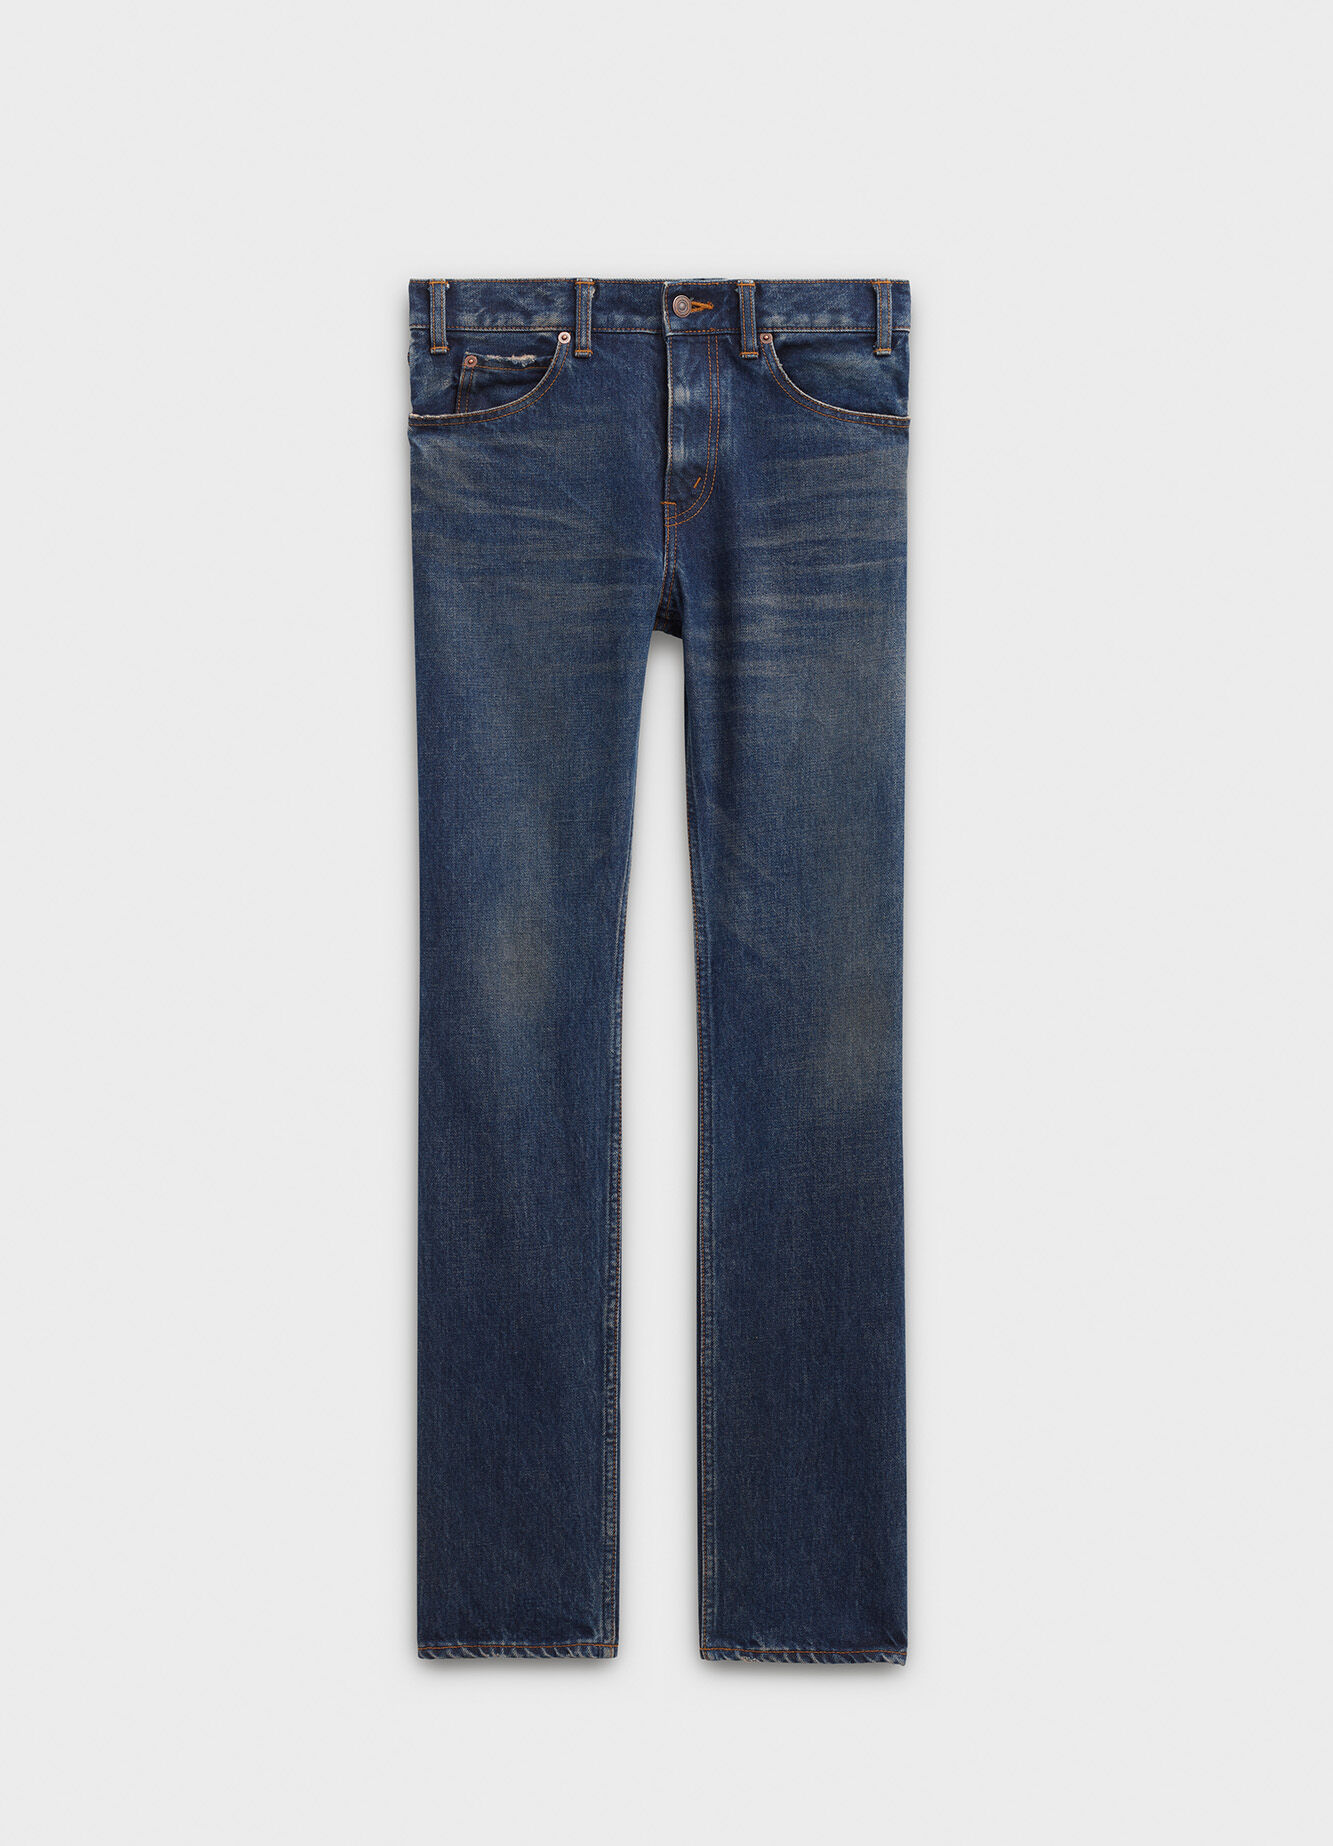 CELINE REGULAR PANTS MID WAIST IN DENIM